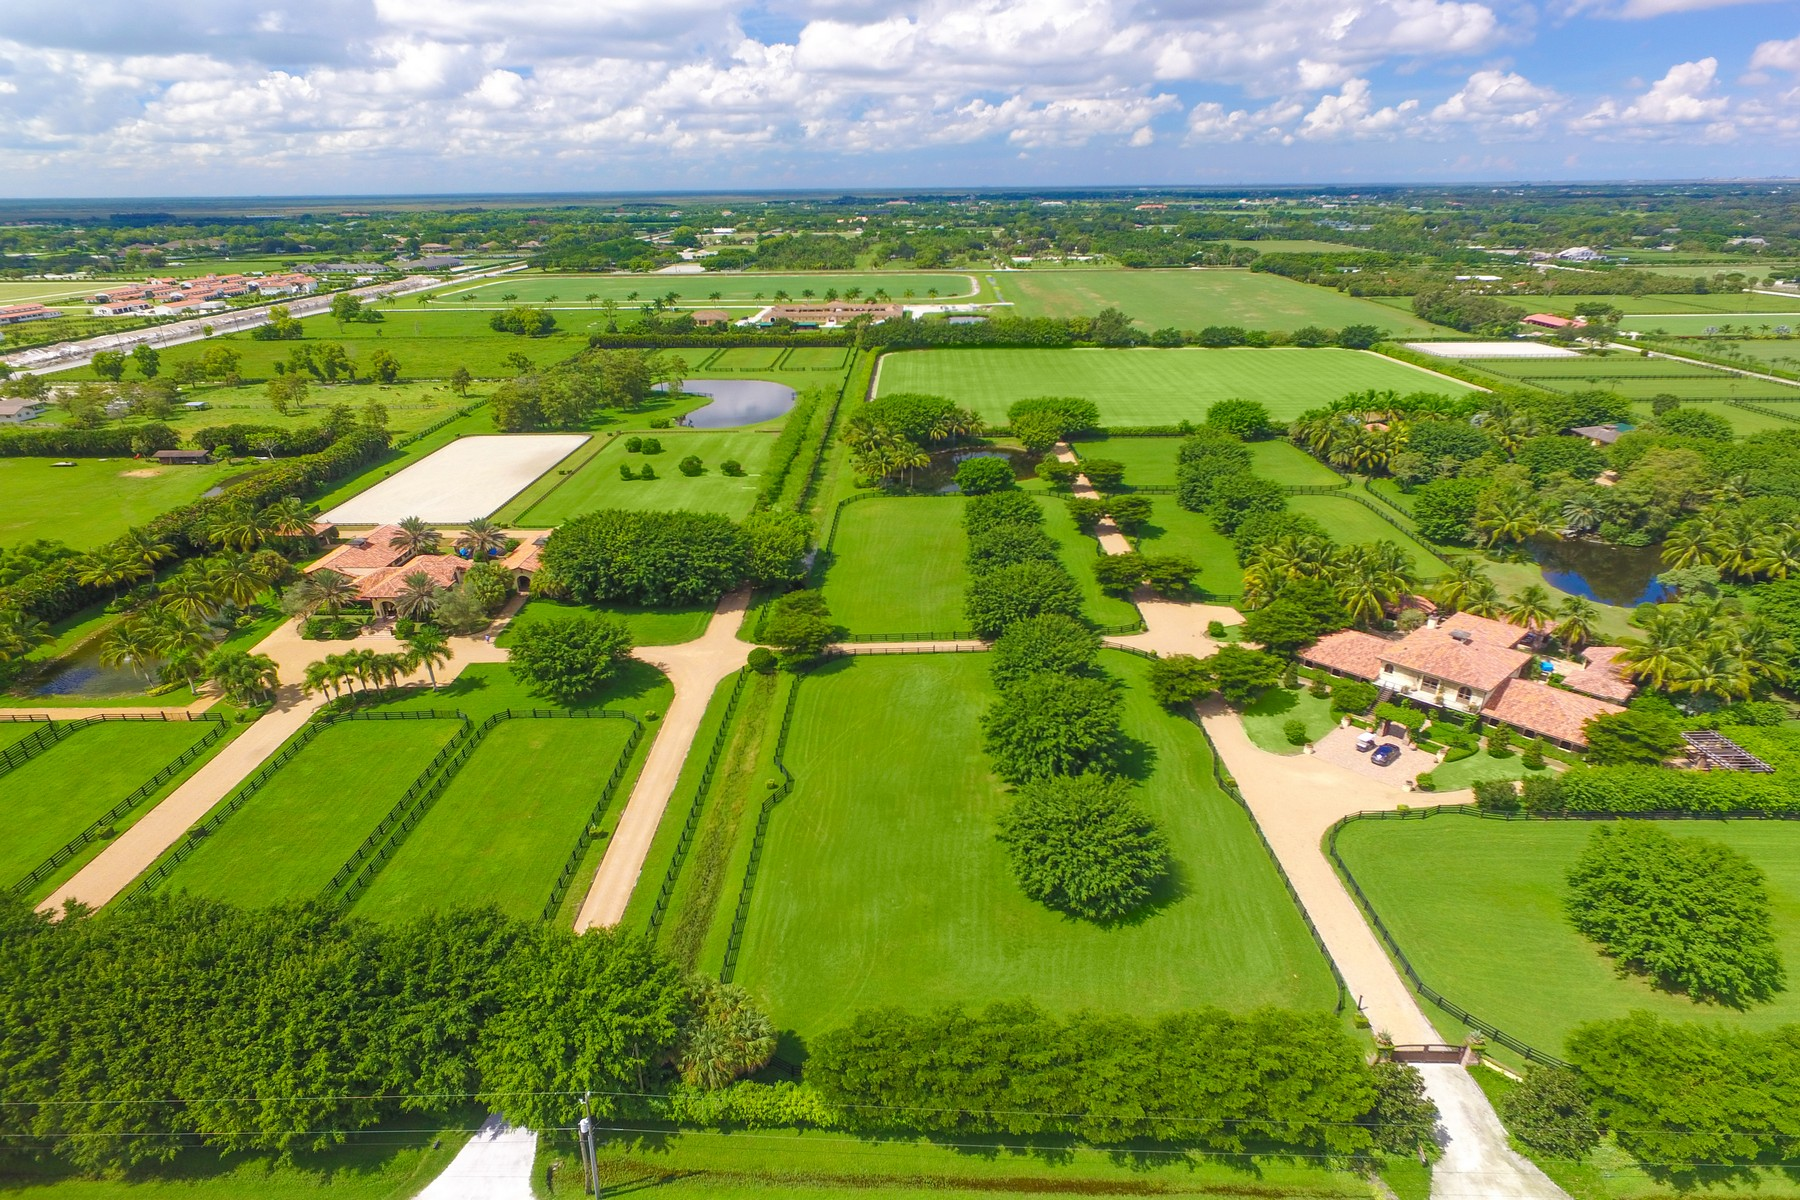 Villa per Vendita alle ore 4715 125th Ave South Wellington, Florida, 33414 Stati Uniti